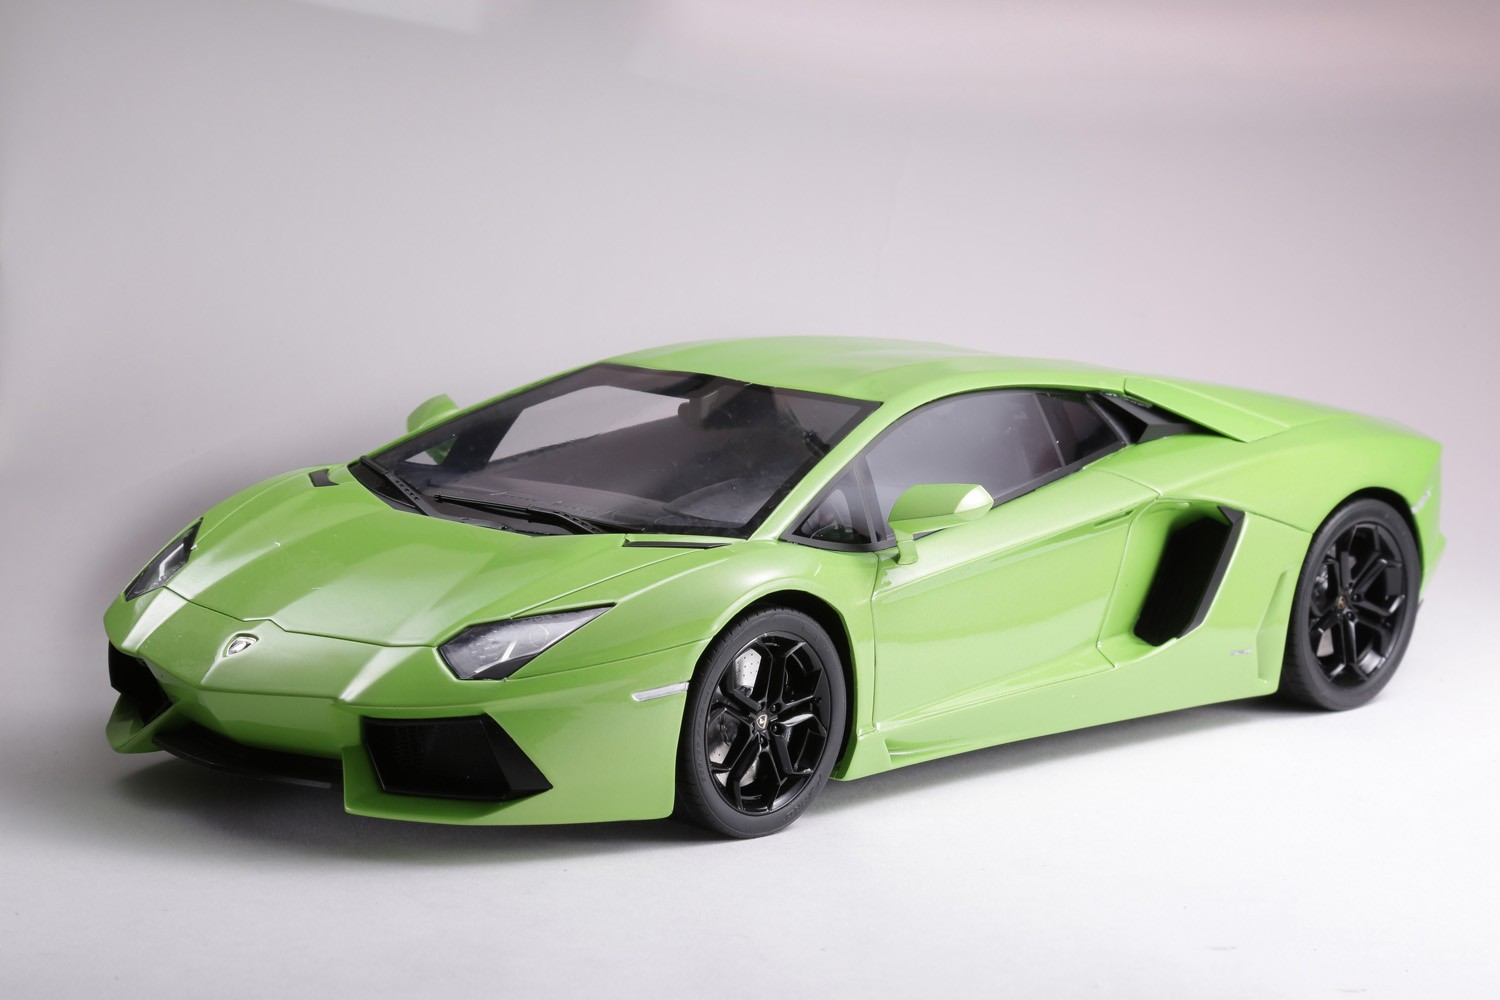 LAMBORGHINI AVENTADOR LP 700-4 - KSR08661GR - LIGHT GREEN